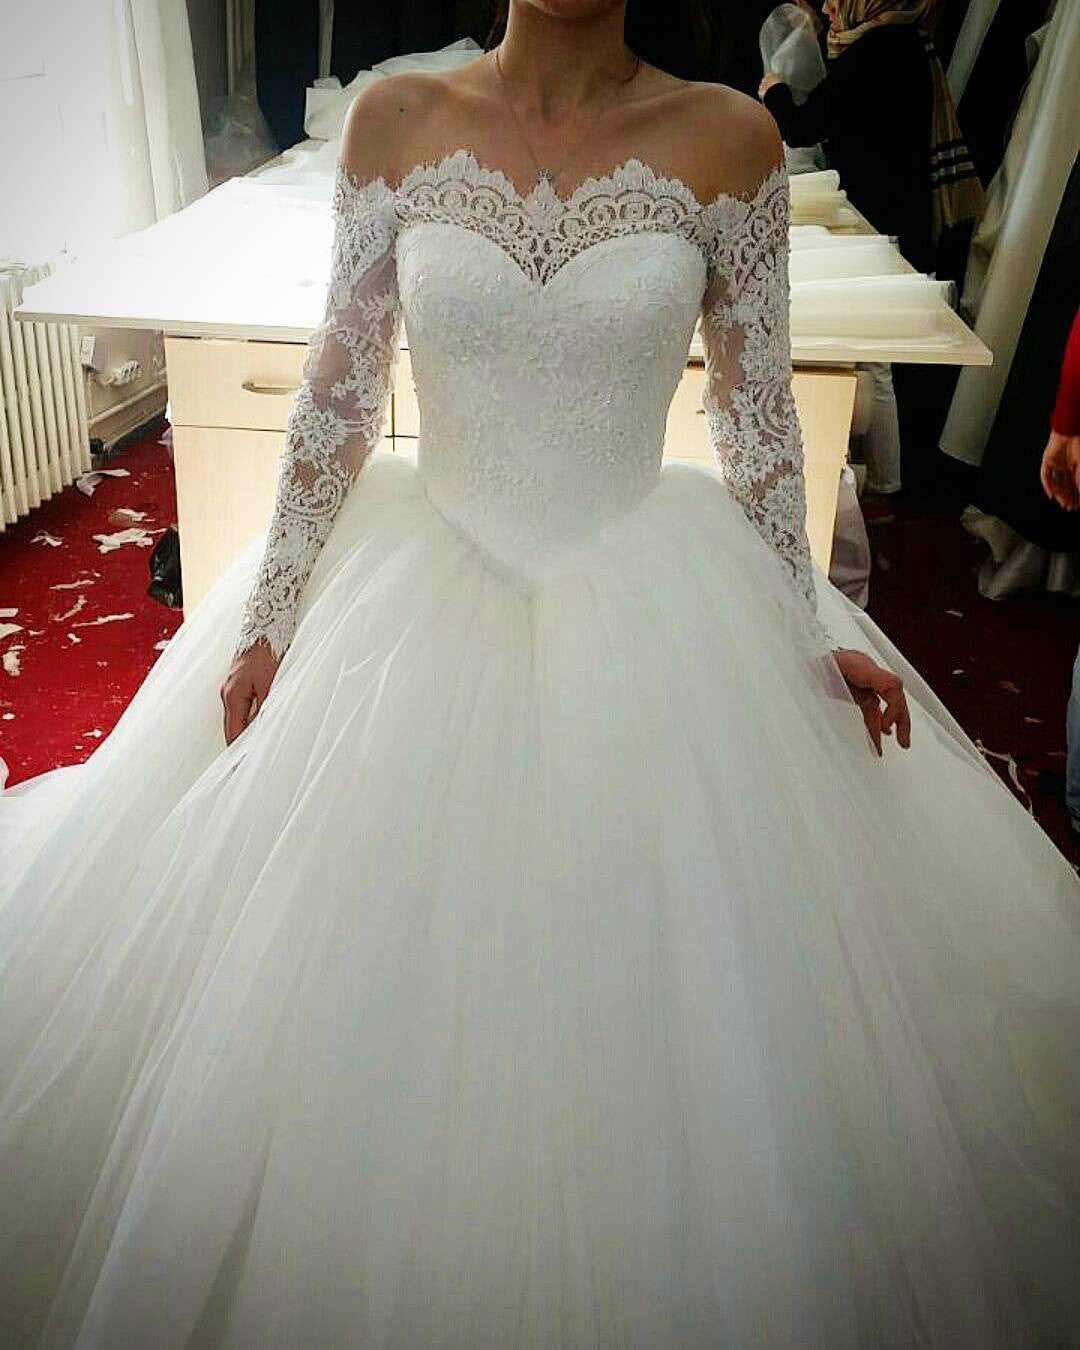 dbd8d1871 sexy lace long sleeves tulle wedding dresses off shoulder bridal dress |  Niceoo